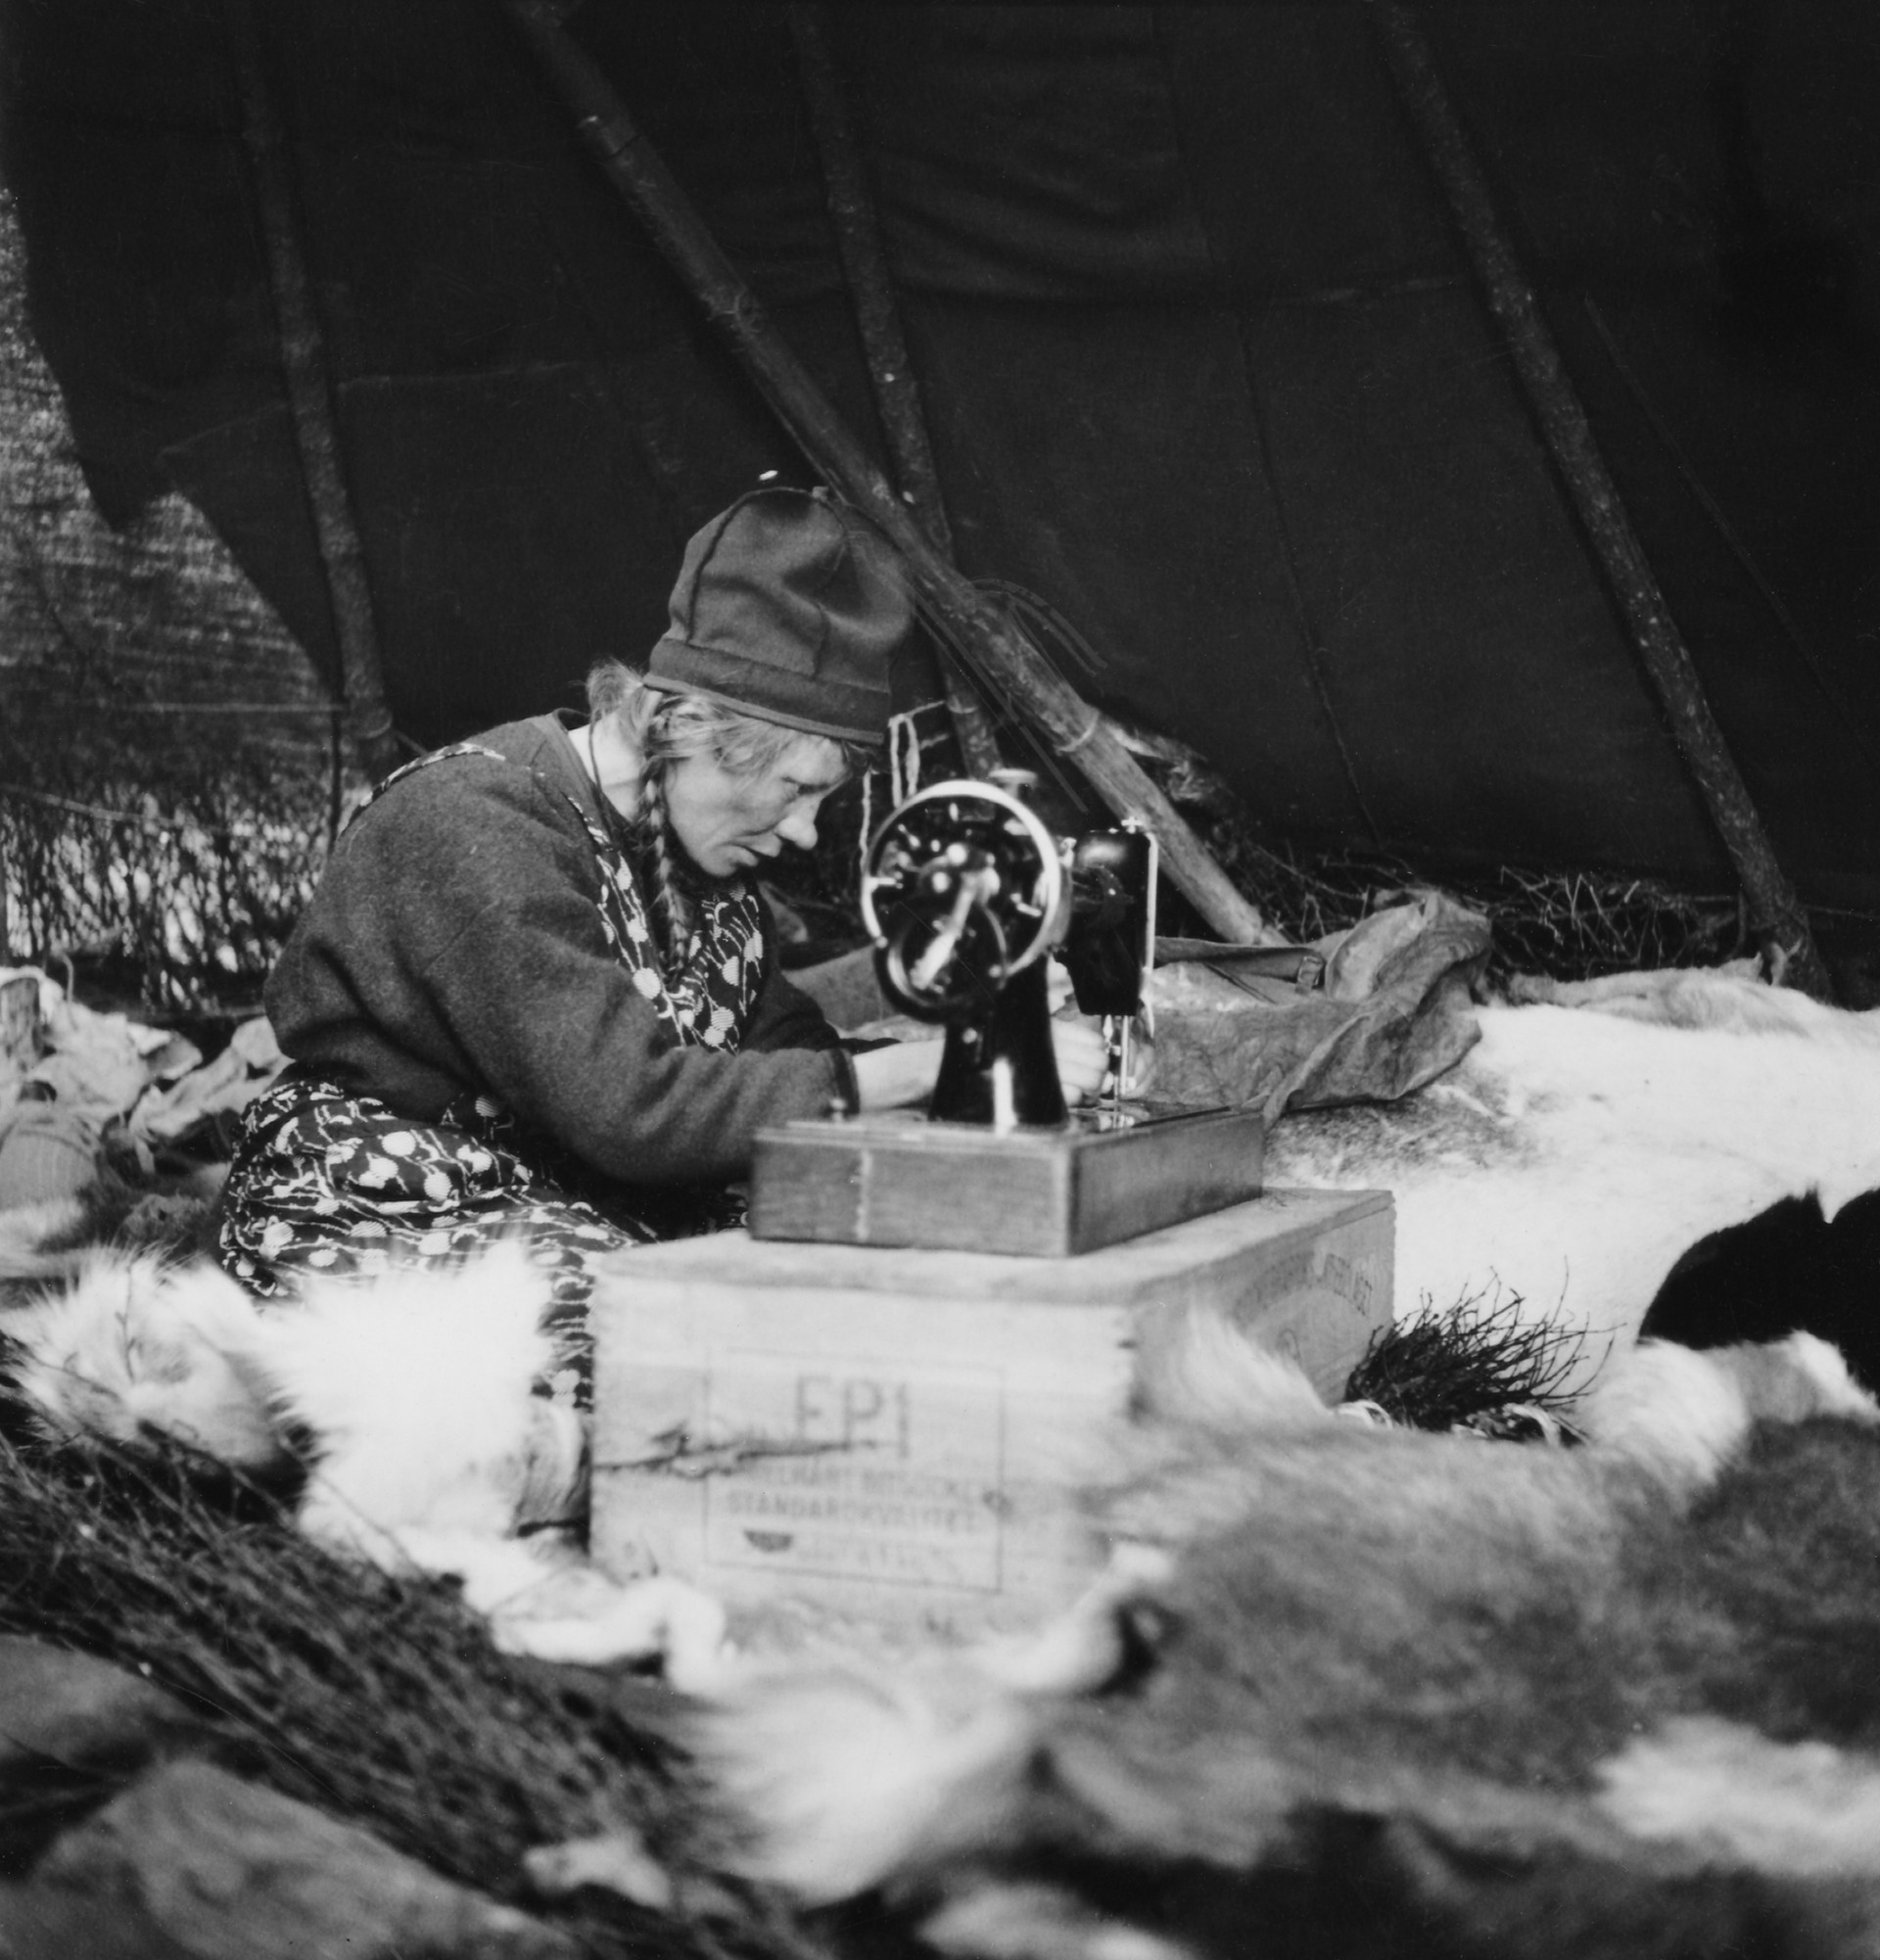 Inga Pirtsi sewing on her sewing machine. Jokkmokk Parish. Photo: Ludvig Wästfelt/ Nordiska museet